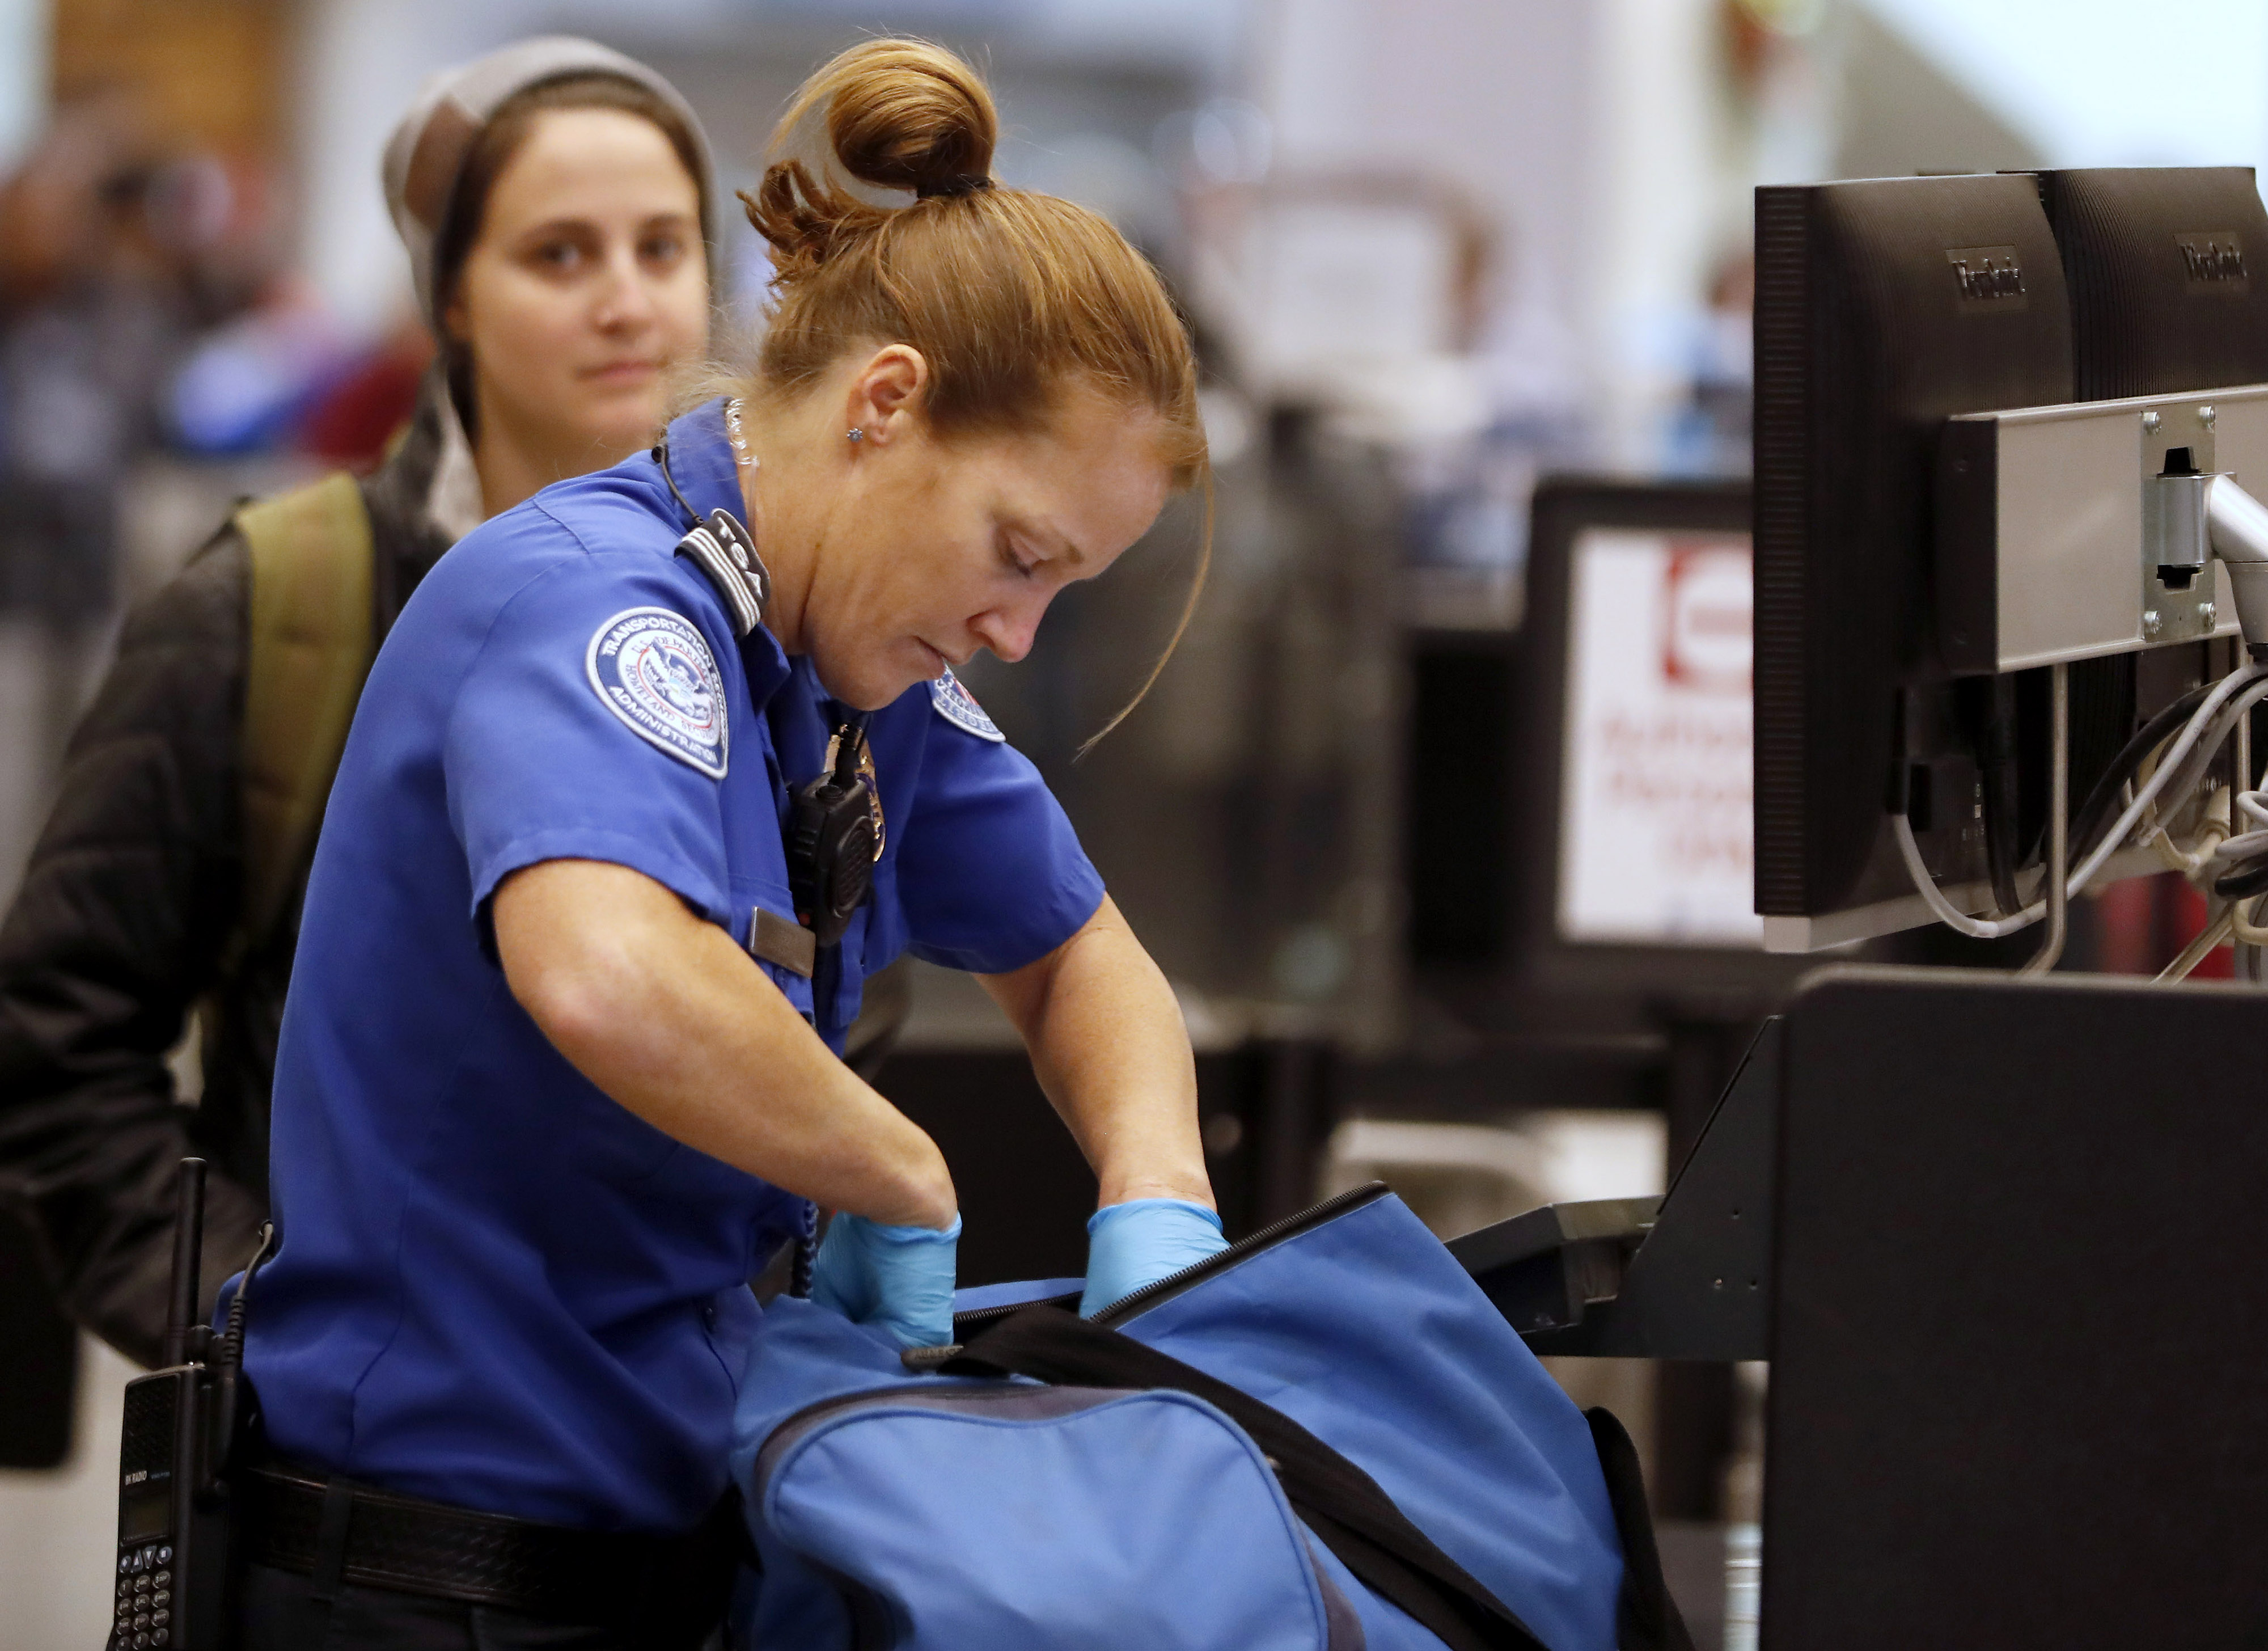 A Transportation Security Administration (TSA) officer checks a traveler's bag at a screening location at Salt Lake City International Airport (SLC) in Salt Lake City, Utah, U.S., on Friday, Dec. 23, 2016. Bloomberg—Bloomberg via Getty Images